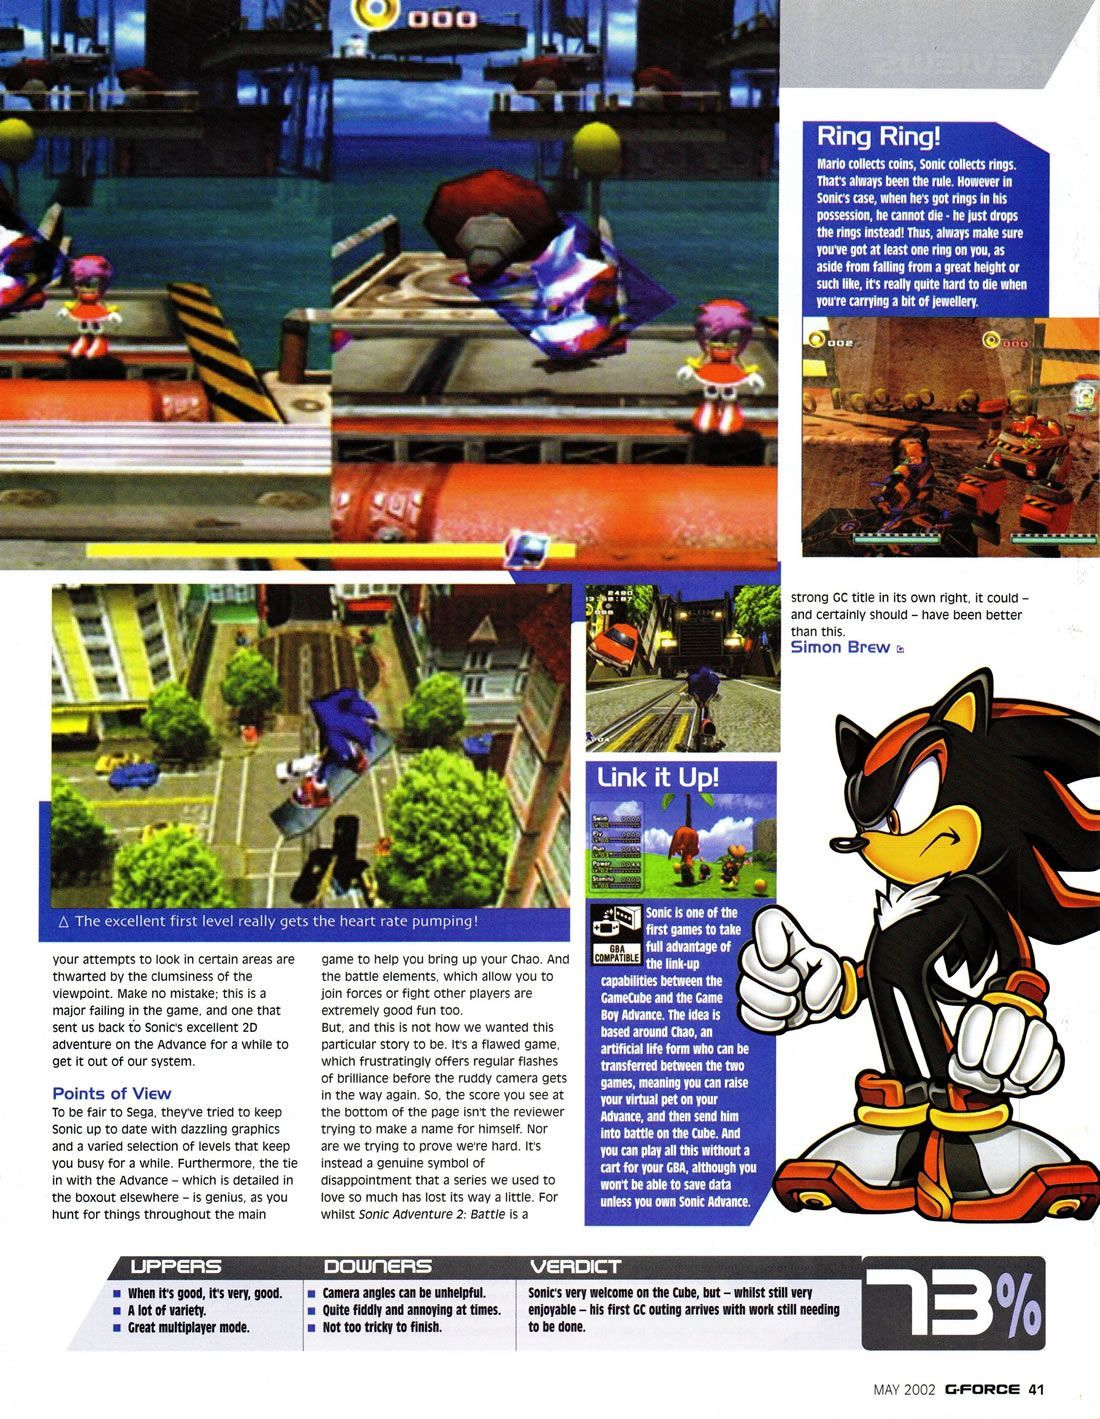 Pin by Sonic Scene on Retro Magazine Scans | Sonic adventure